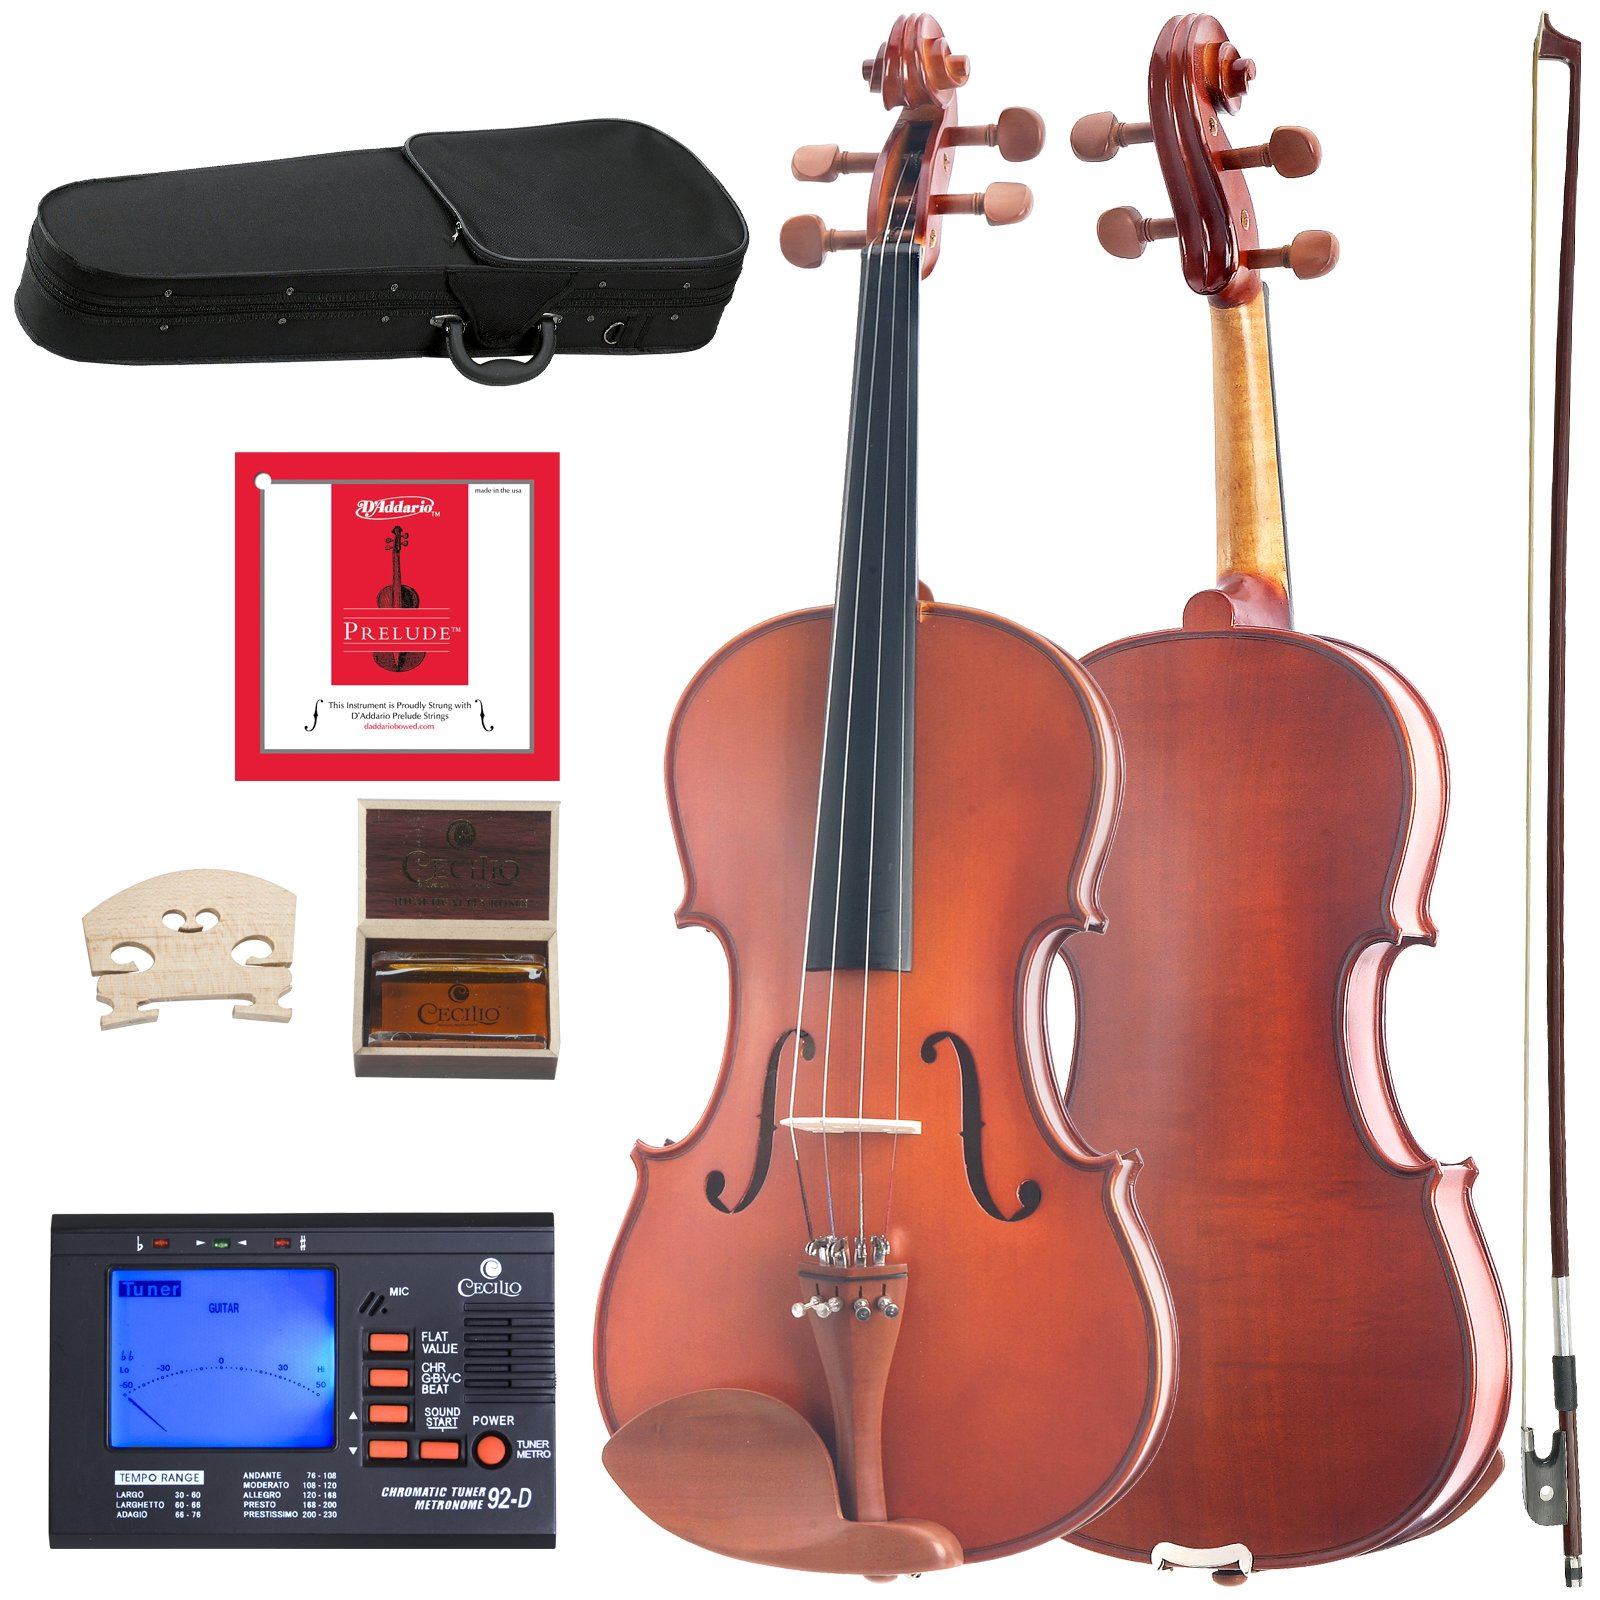 Cecilio CVA-400 Solidwood Viola with D'Addario Prelude Strings, Size 15-Inch